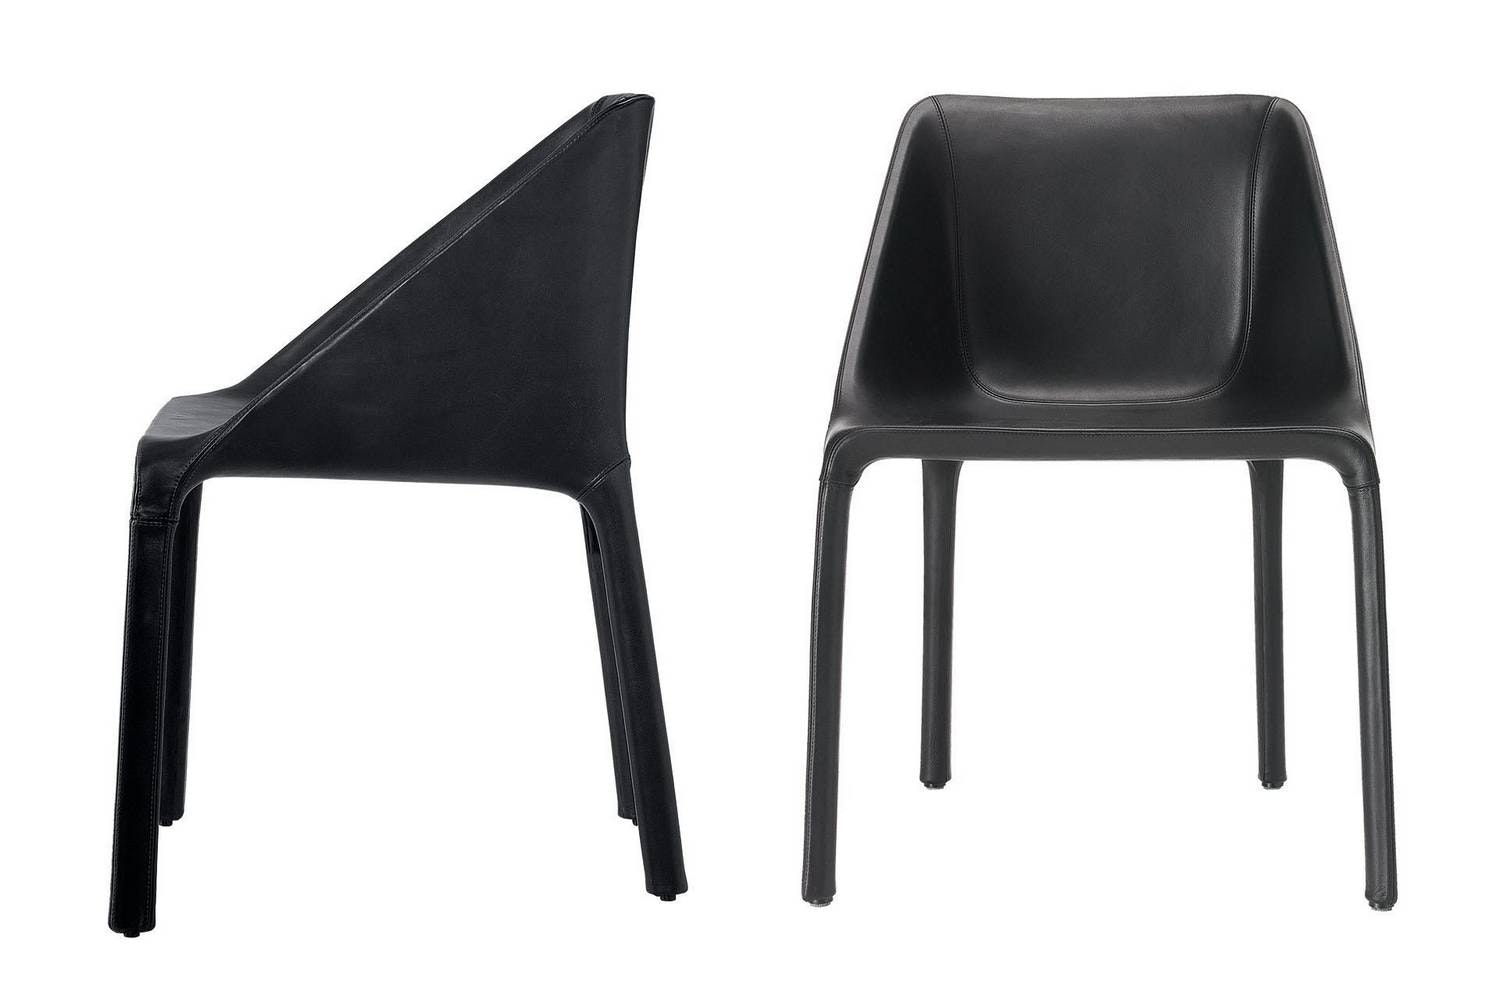 Manta Chair by Rodrigo Torres for Poliform